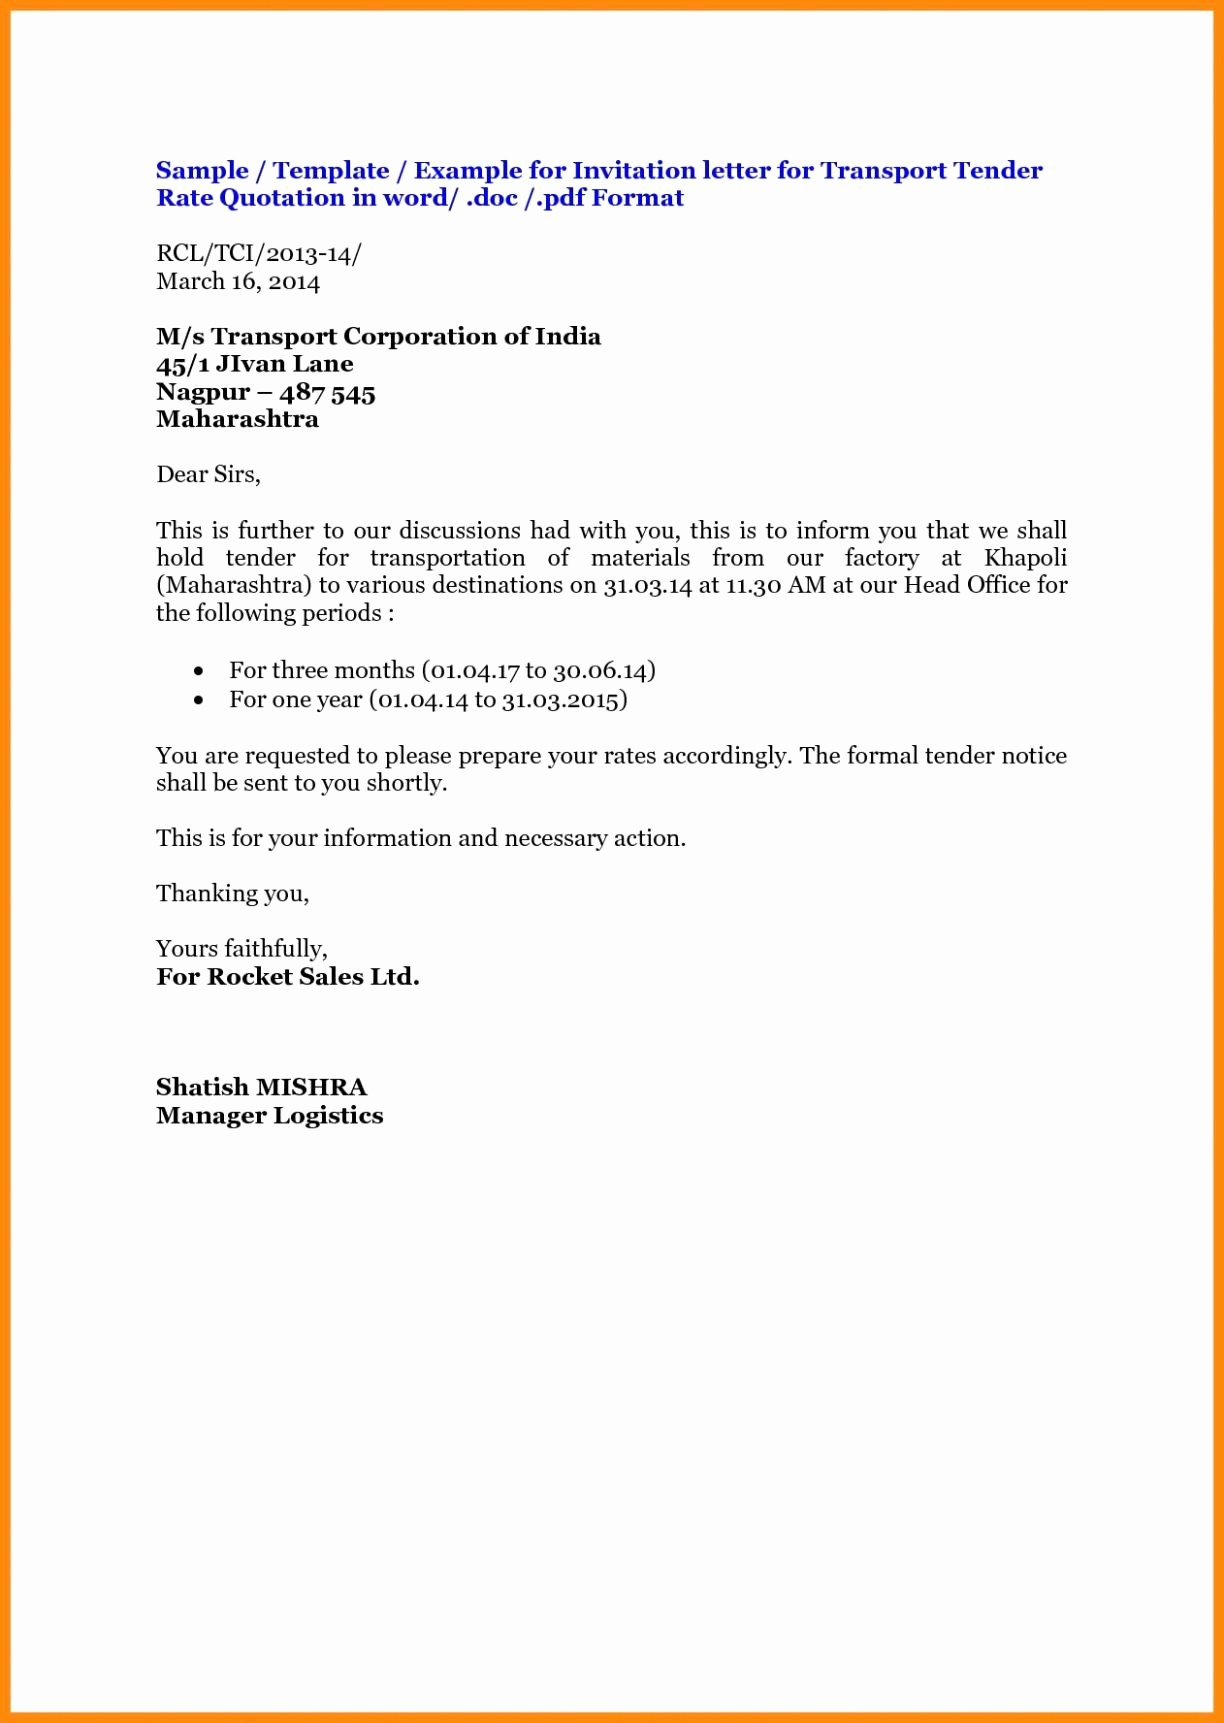 Request for Quote Template Word Luxury 7 Request for Quotation Email Sample